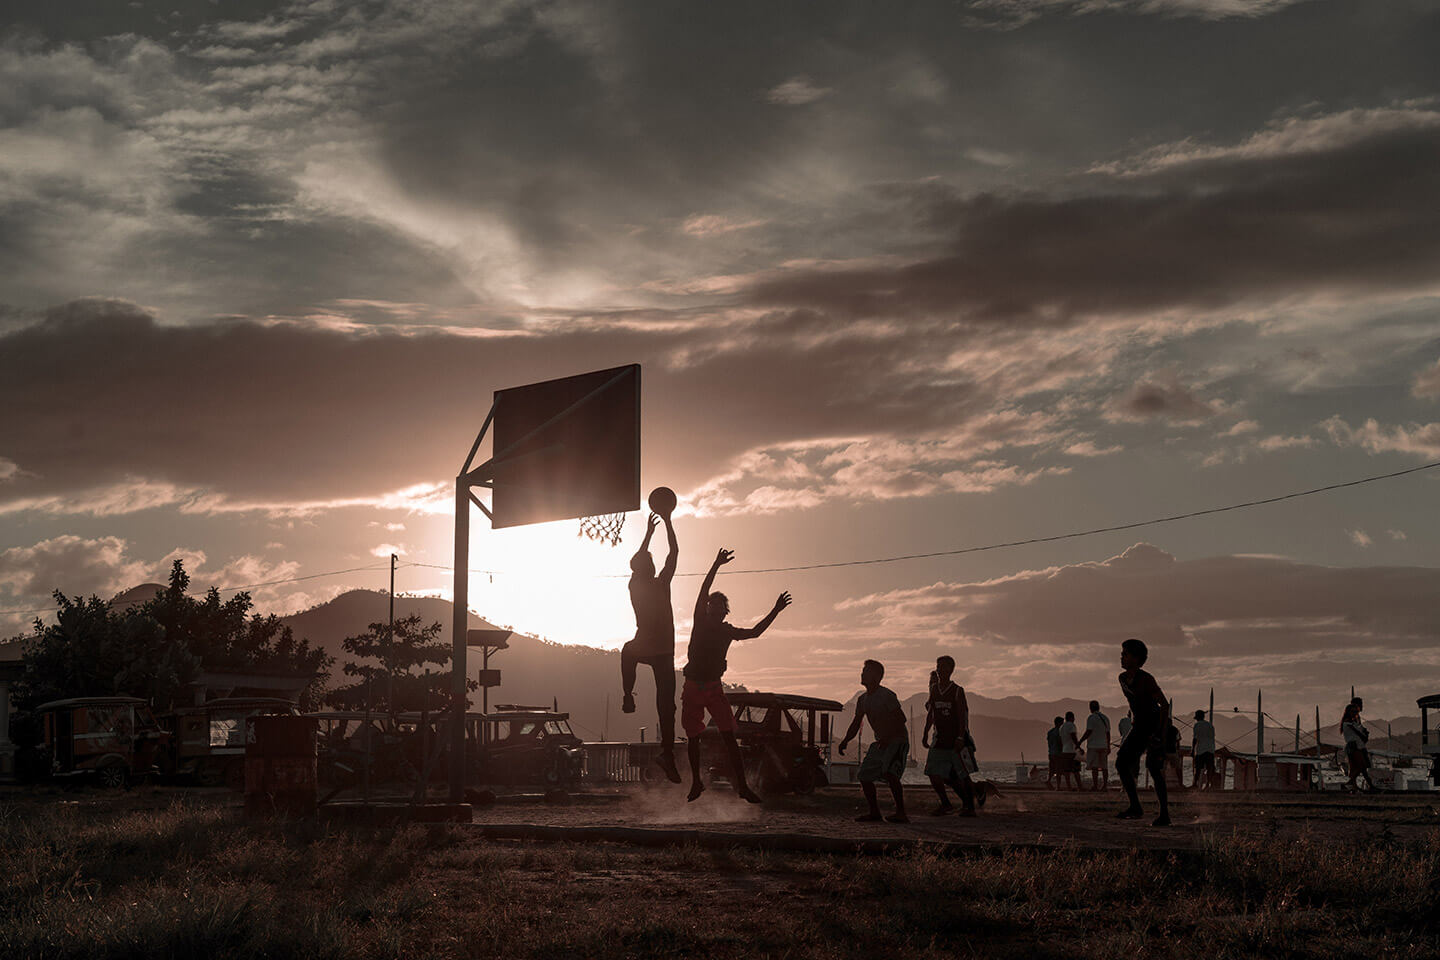 Locals and volunteers alike play basketball after a long day.